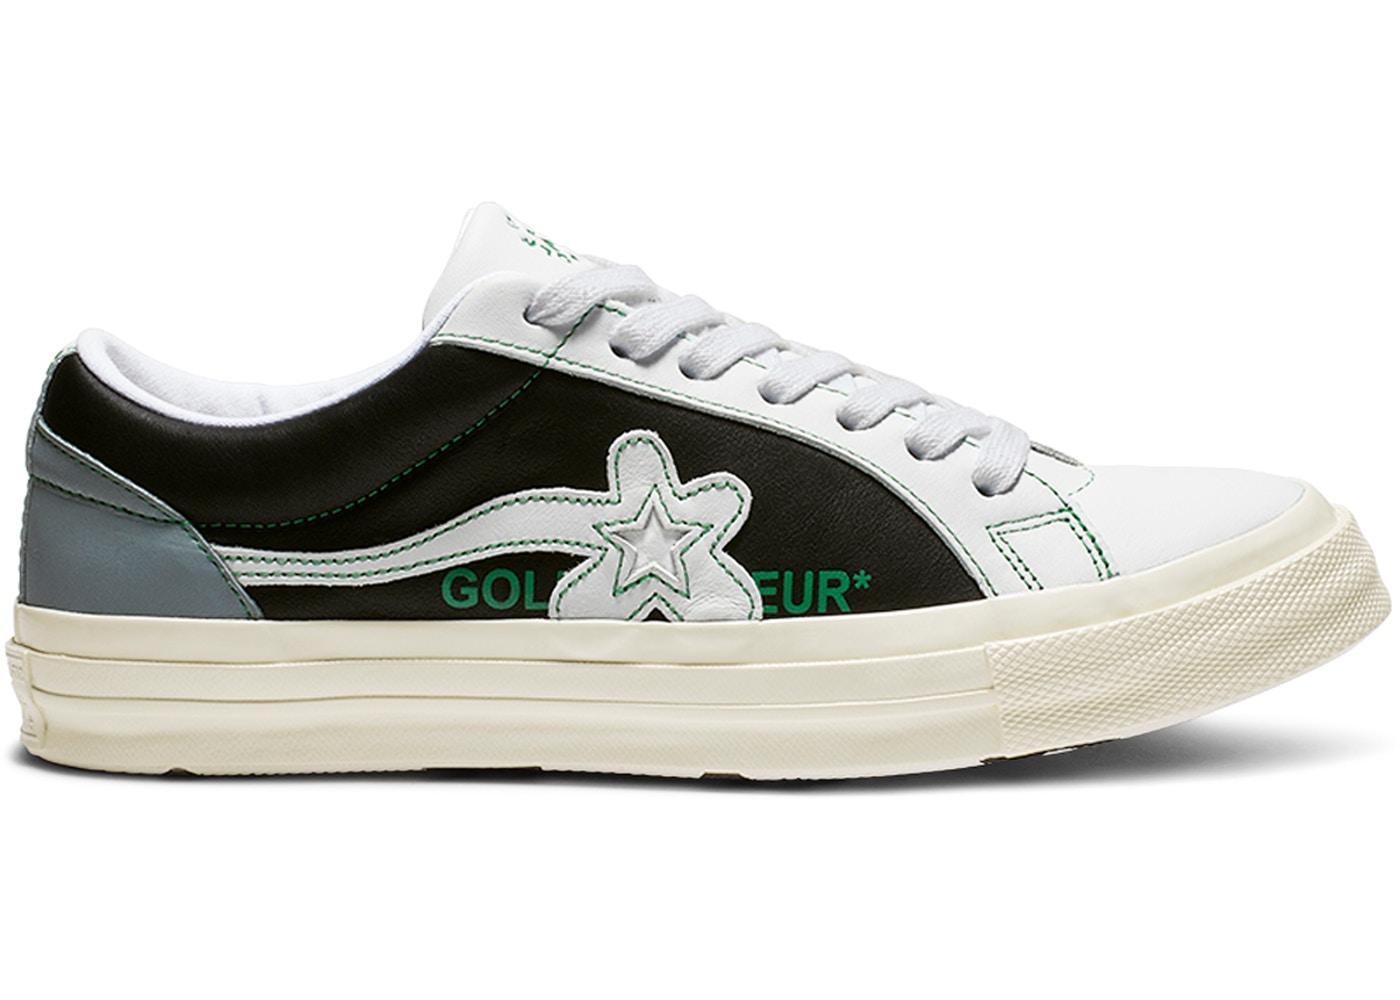 3d79c206d72 Sell. or Ask. Size  3.5. View All Bids. Converse One Star Ox Golf Le Fleur  ...